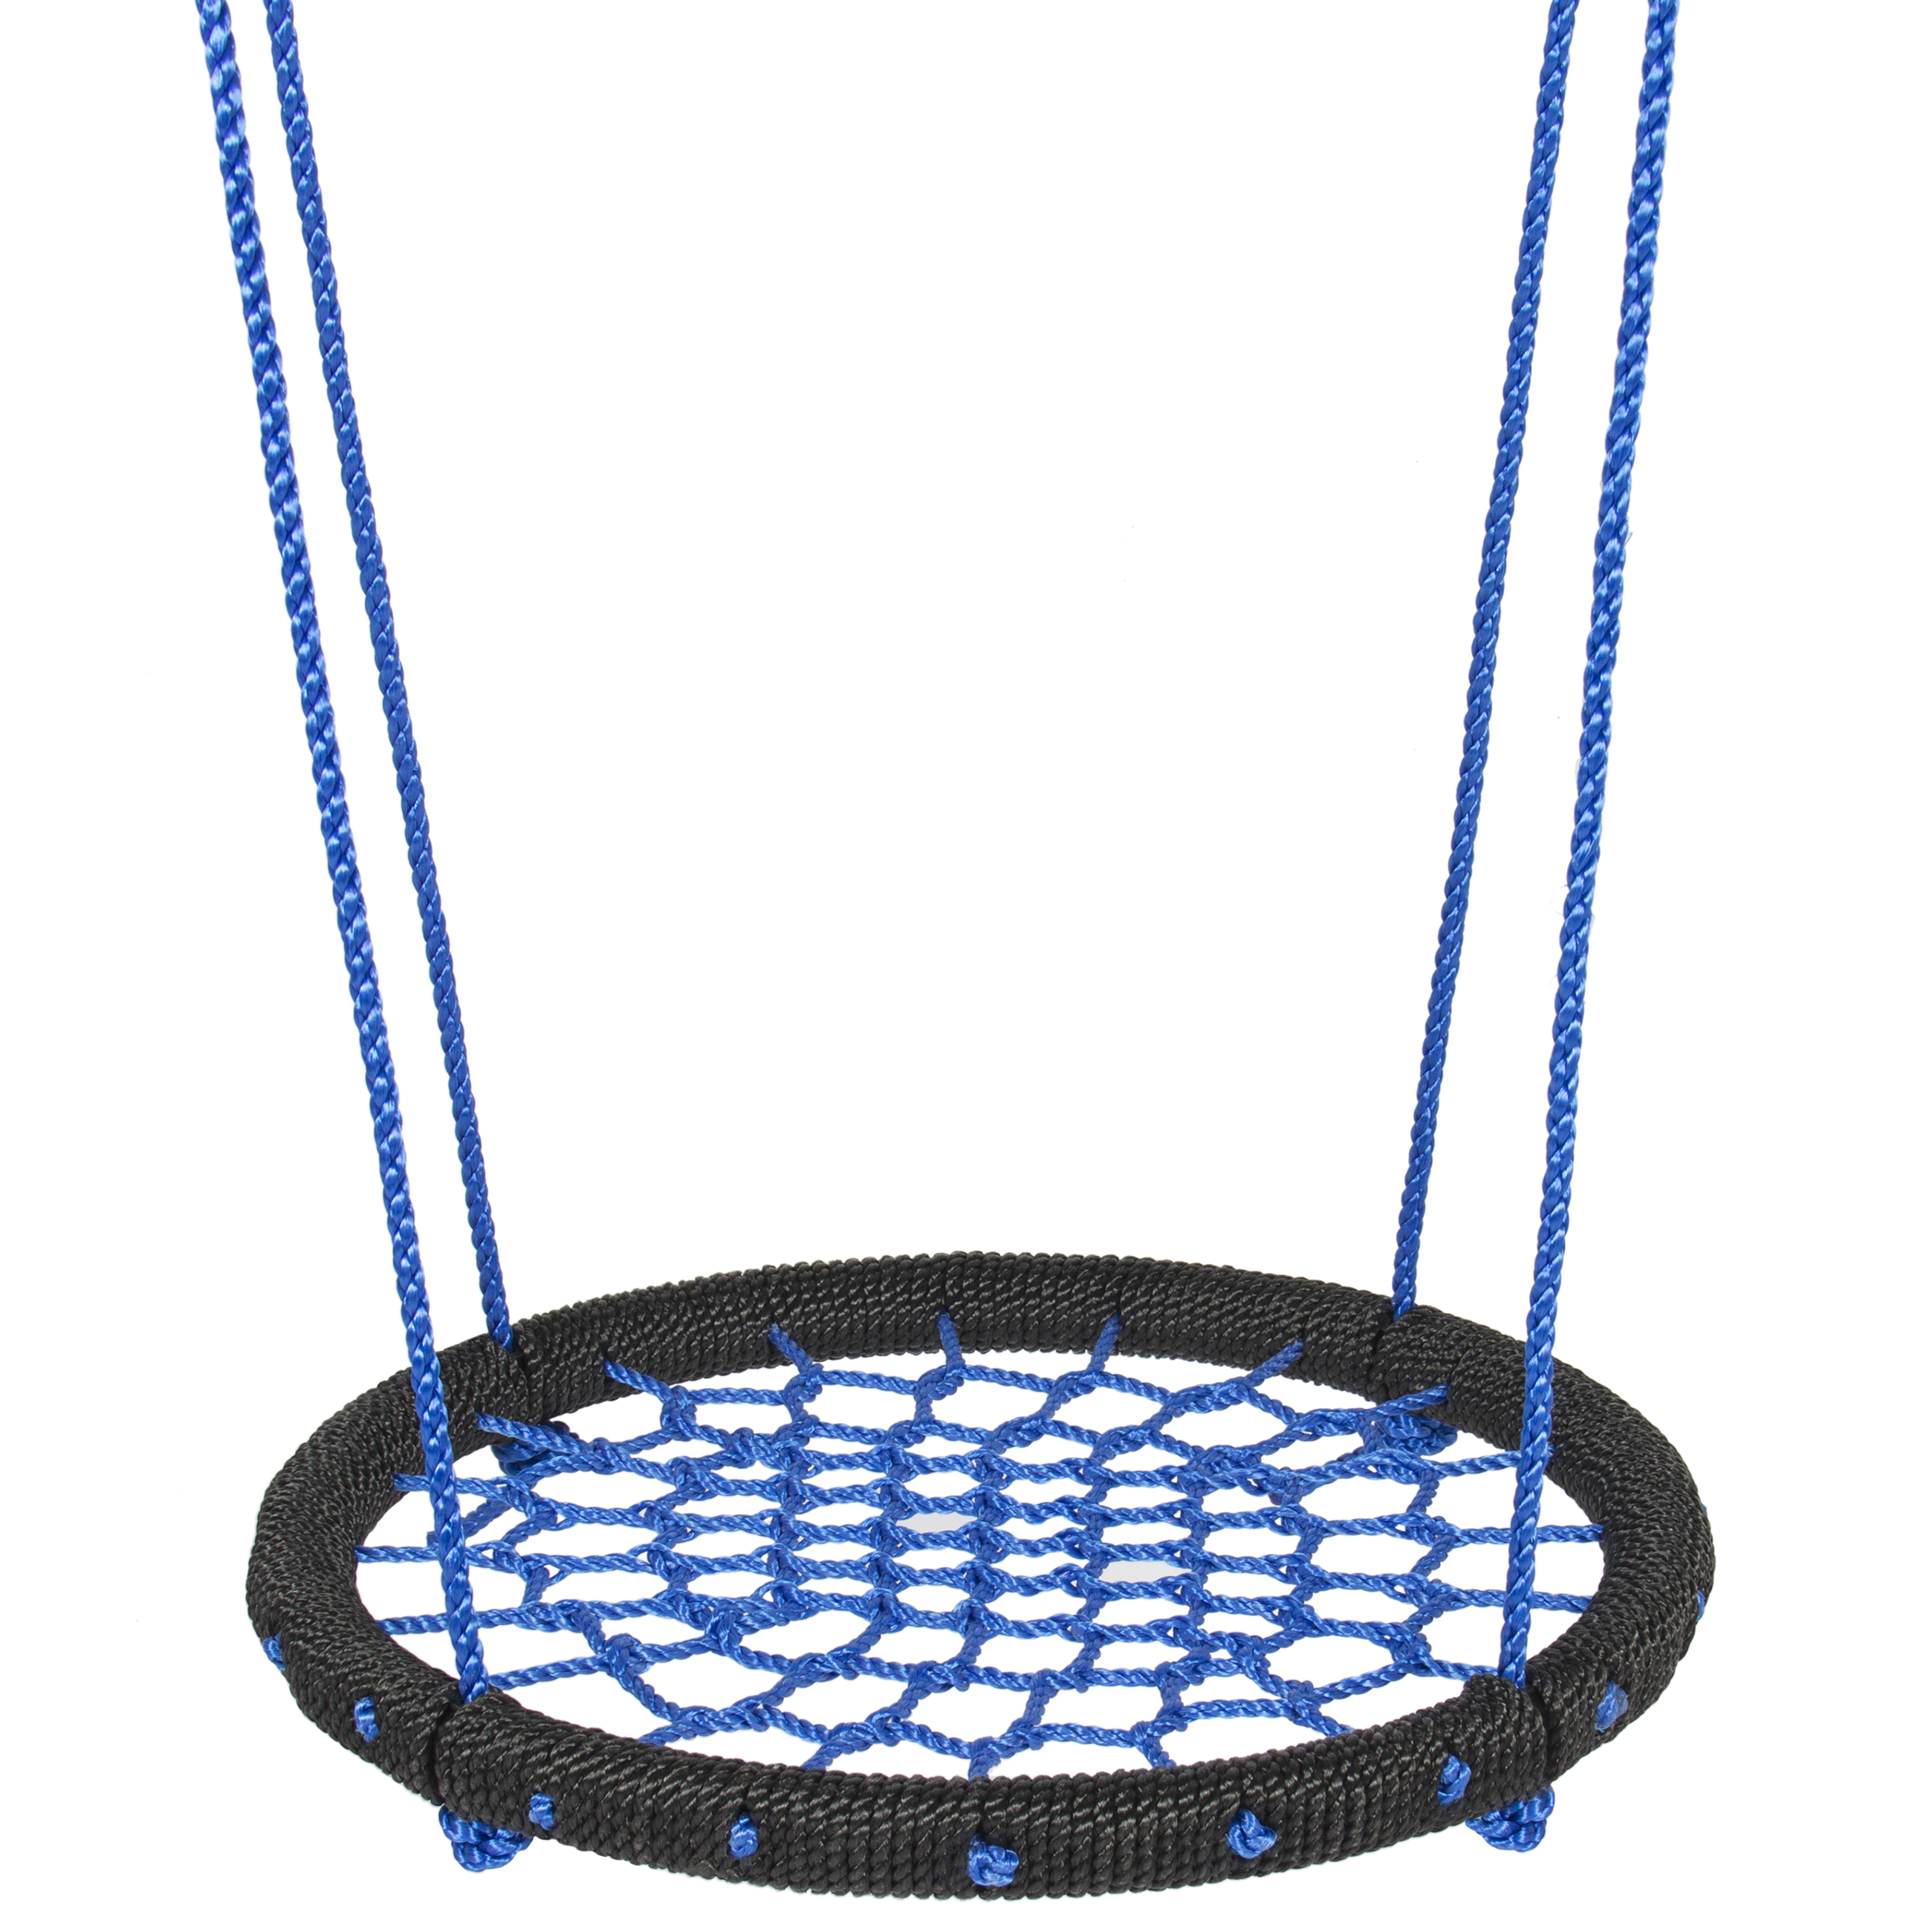 Best Choice Products 24in Web Swing Set w/ Nylon Net Rope for Tree Hanging, Outdoor Play, Playground - Blue/Black